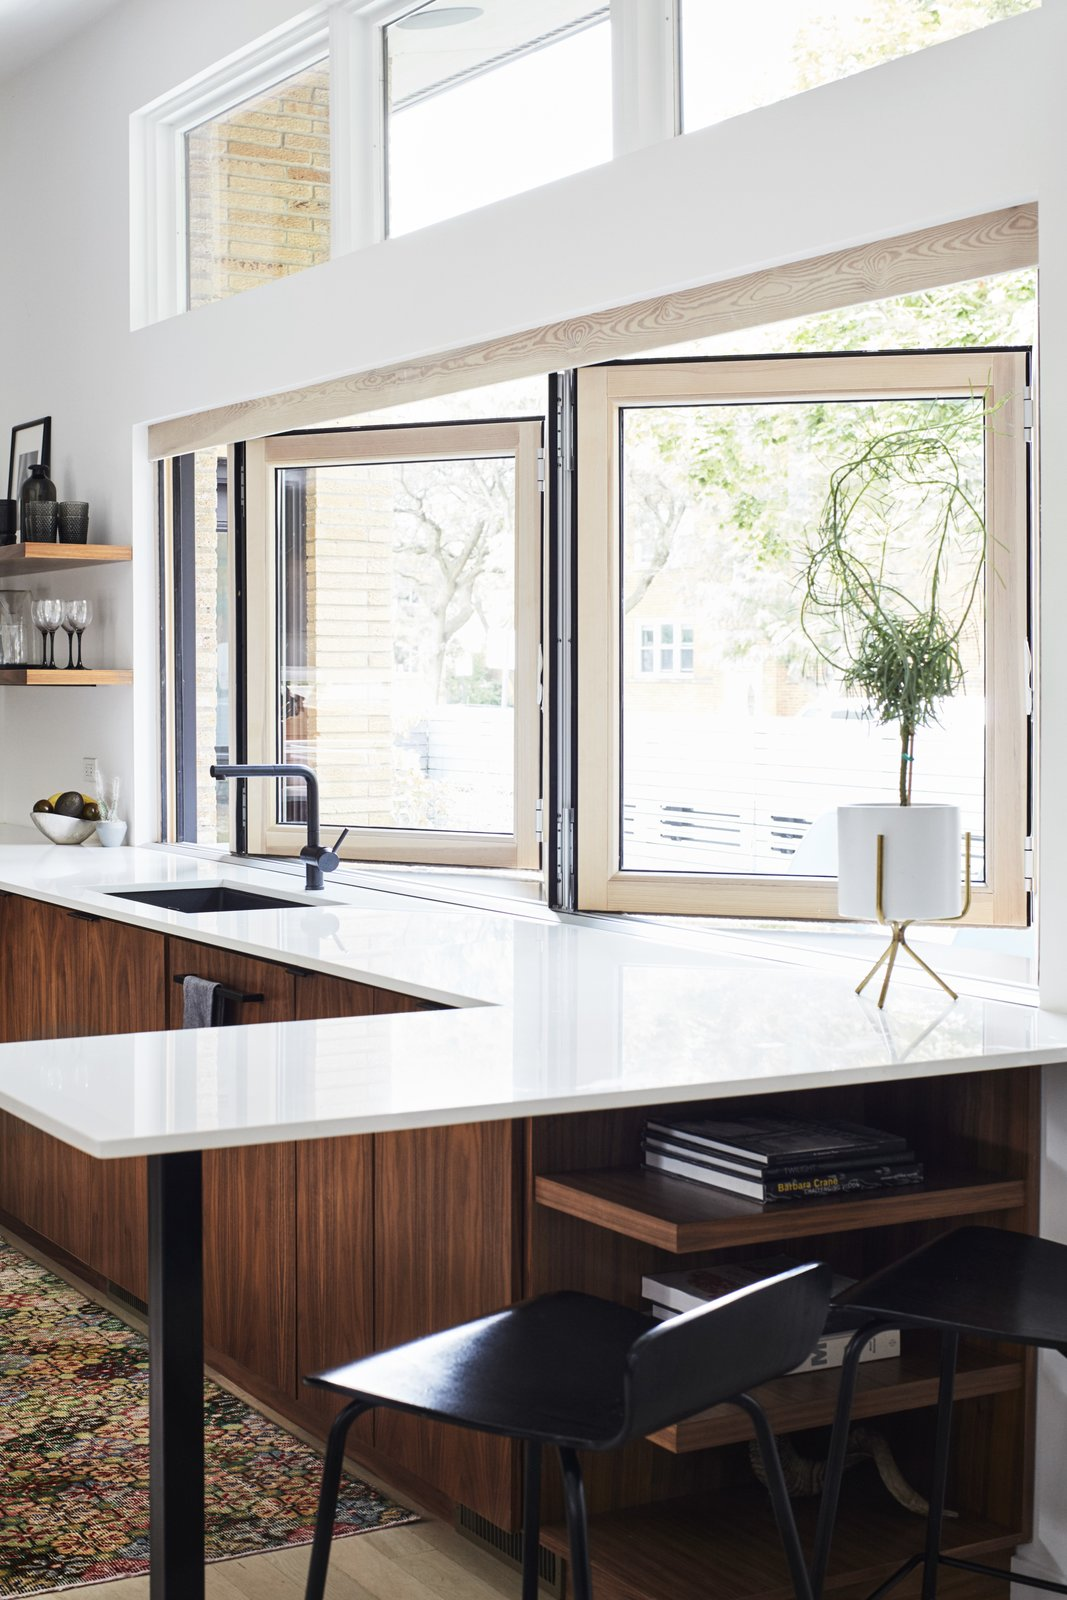 A 14-foot-wide opening defines the kitchen, which architect Scott Delano, with Nicholas Pettit, carved out of what had been an enclosed breezeway and part of the garage. The bifold window is from NanaWall, the windows above are by Pella, and  the faucet is by Blanco.